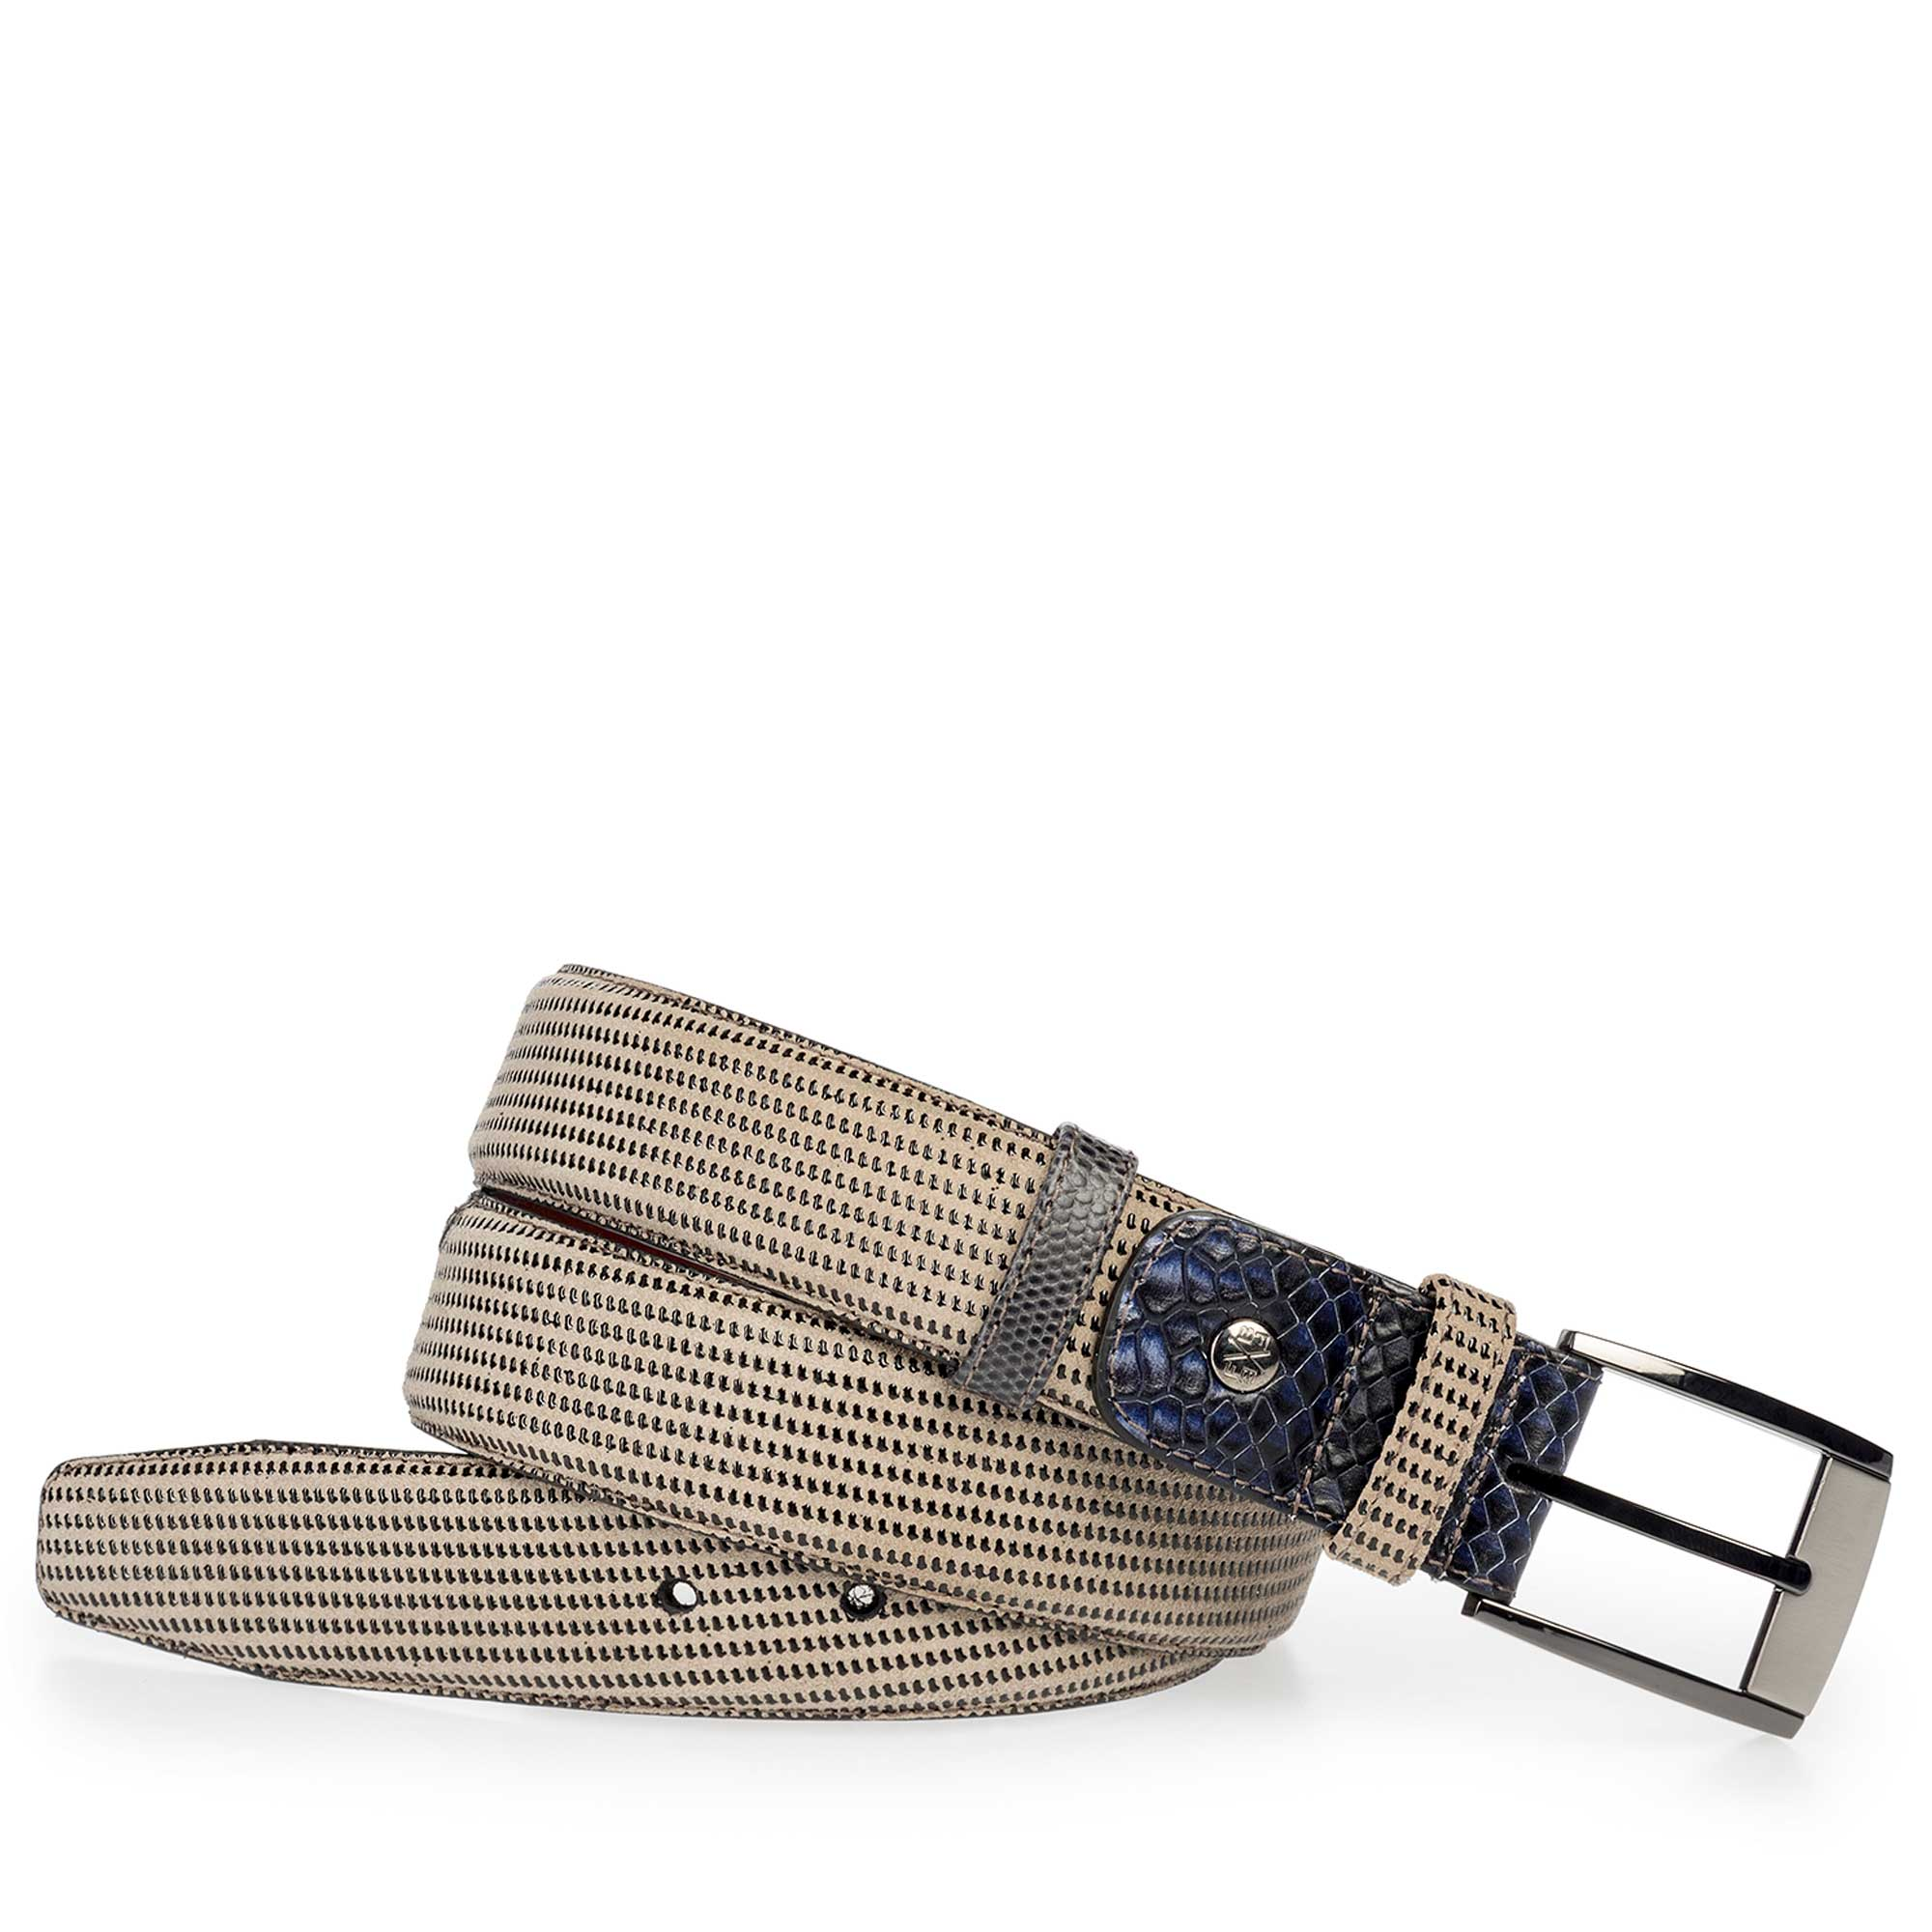 75176/03 - Sand-coloured suede leather belt with pattern